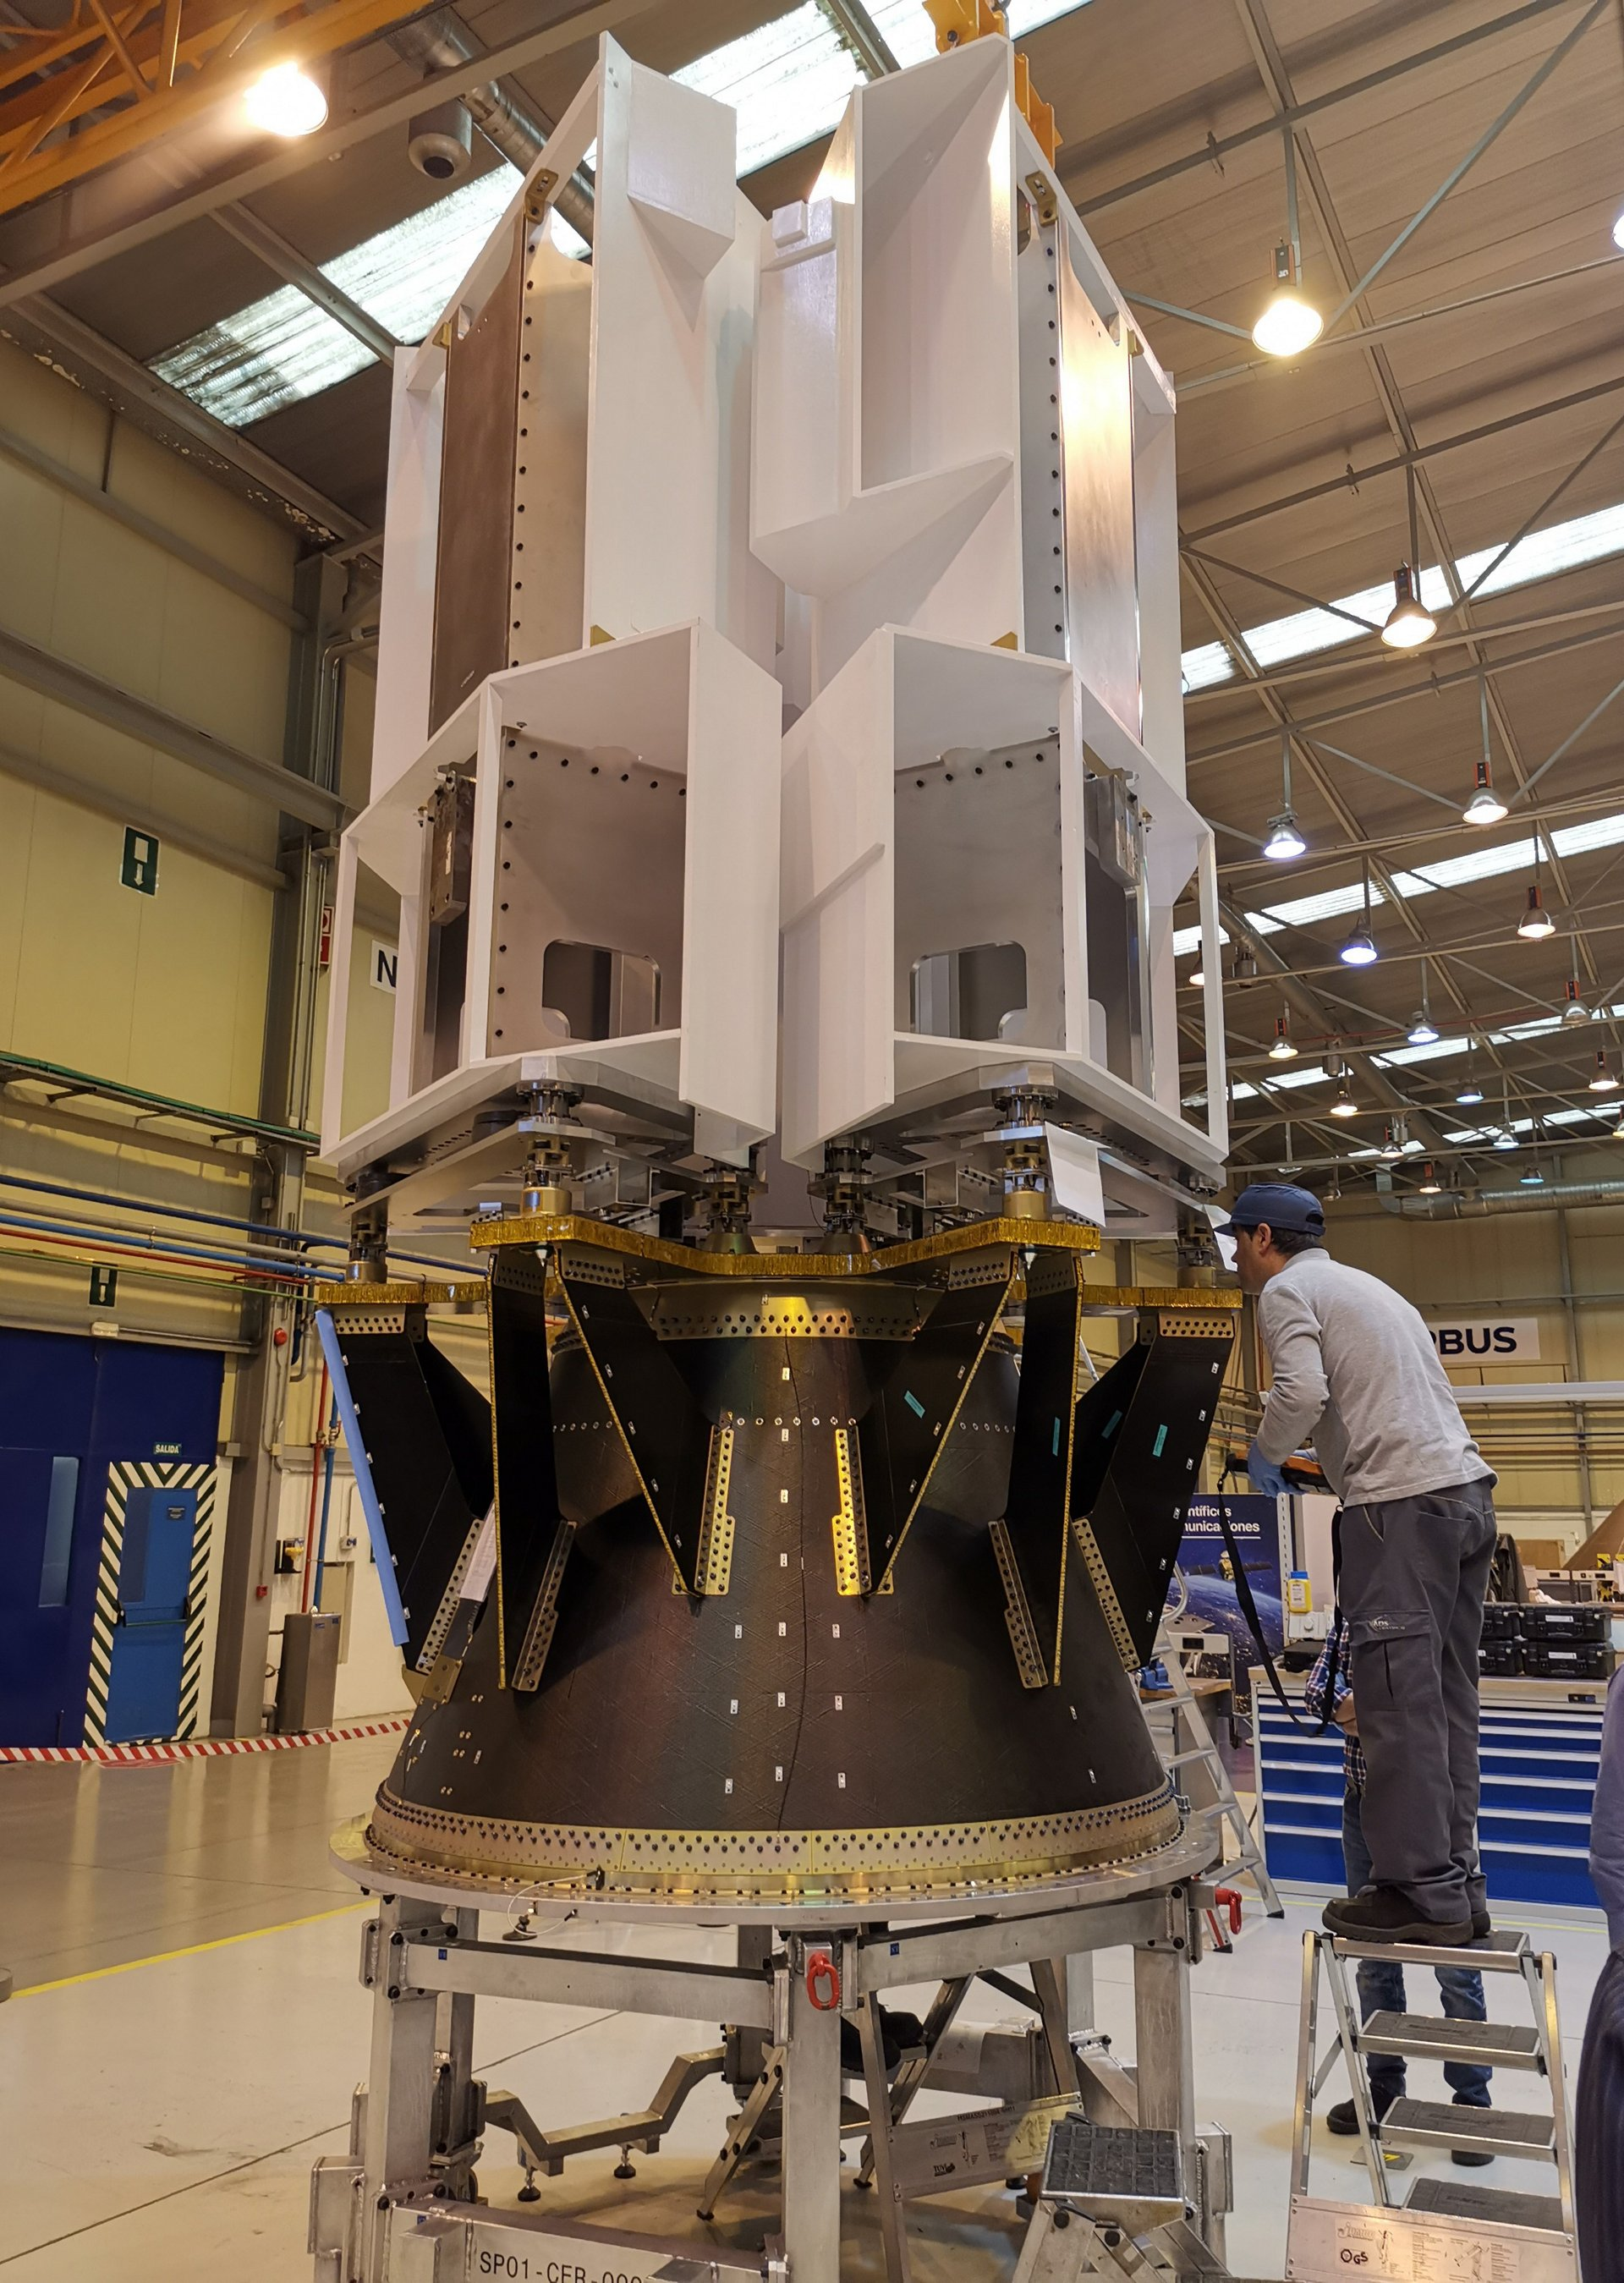 Dispensers are structures that facilitate the launch of two or more satellites into orbit in a single launch. This structure maintains the three CERES satellites in the VEGA launcher and releases them once they have reached the desired orbital position.